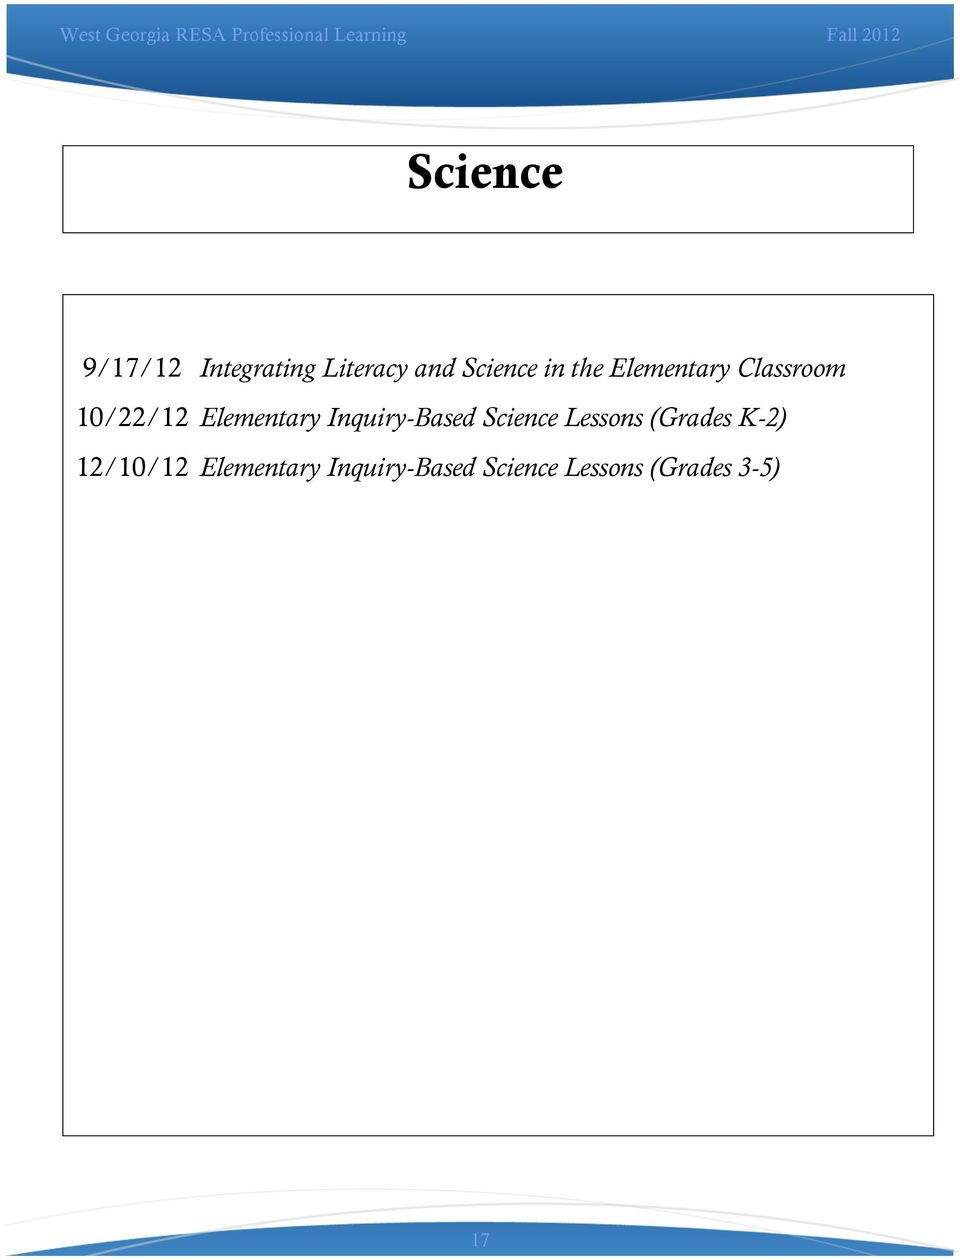 Inquiry-Based Science Lessons (Grades K-2) 12/10/12